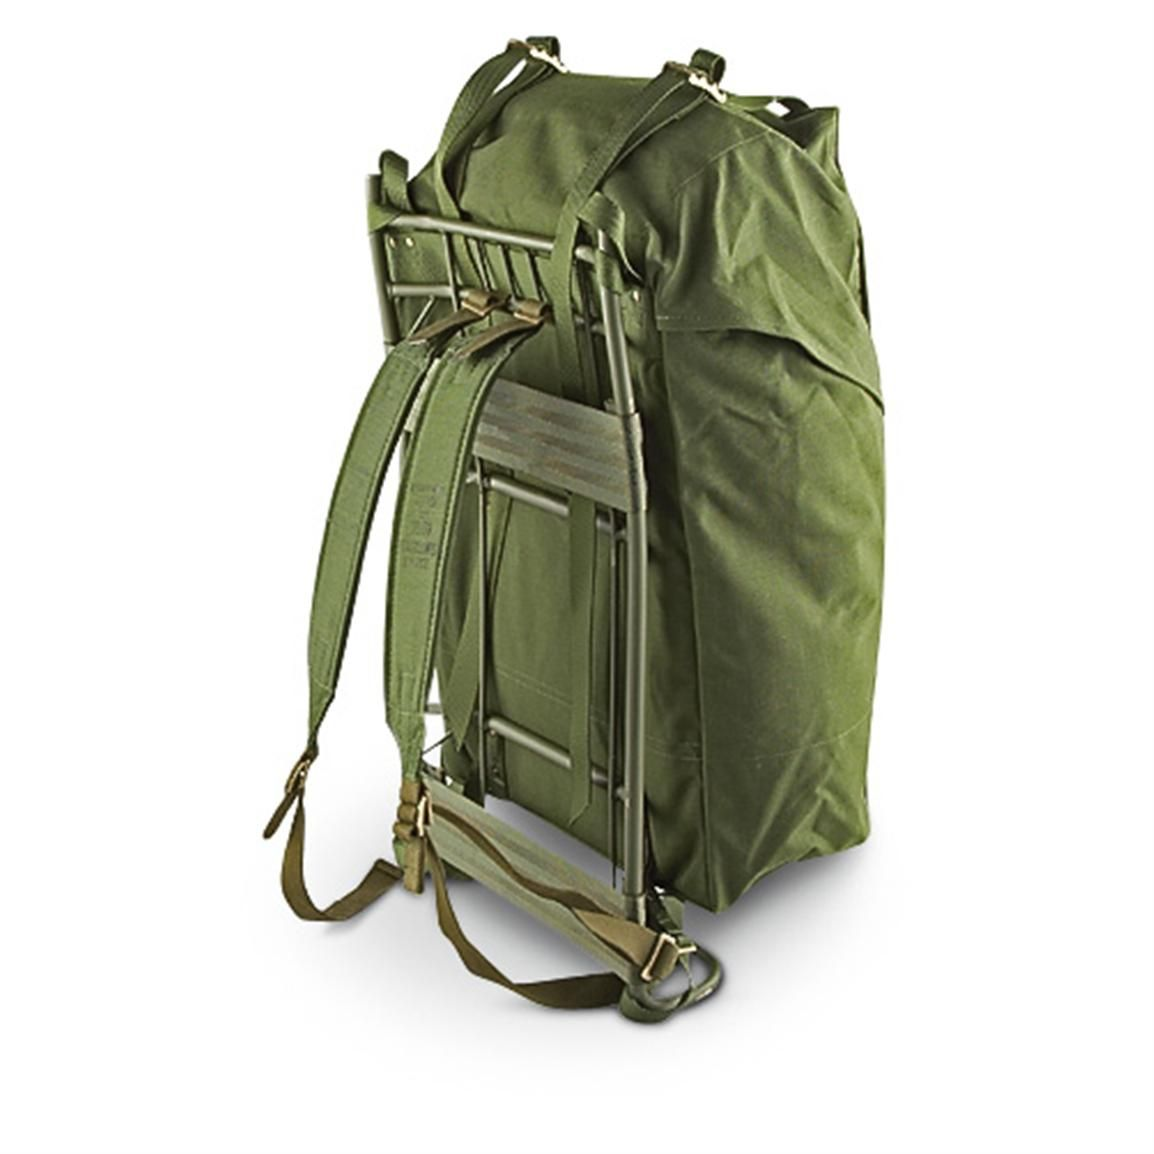 new swedish military backpack with frame rucksacks backpacks at sportsmans guide - Military Rucksack With Frame